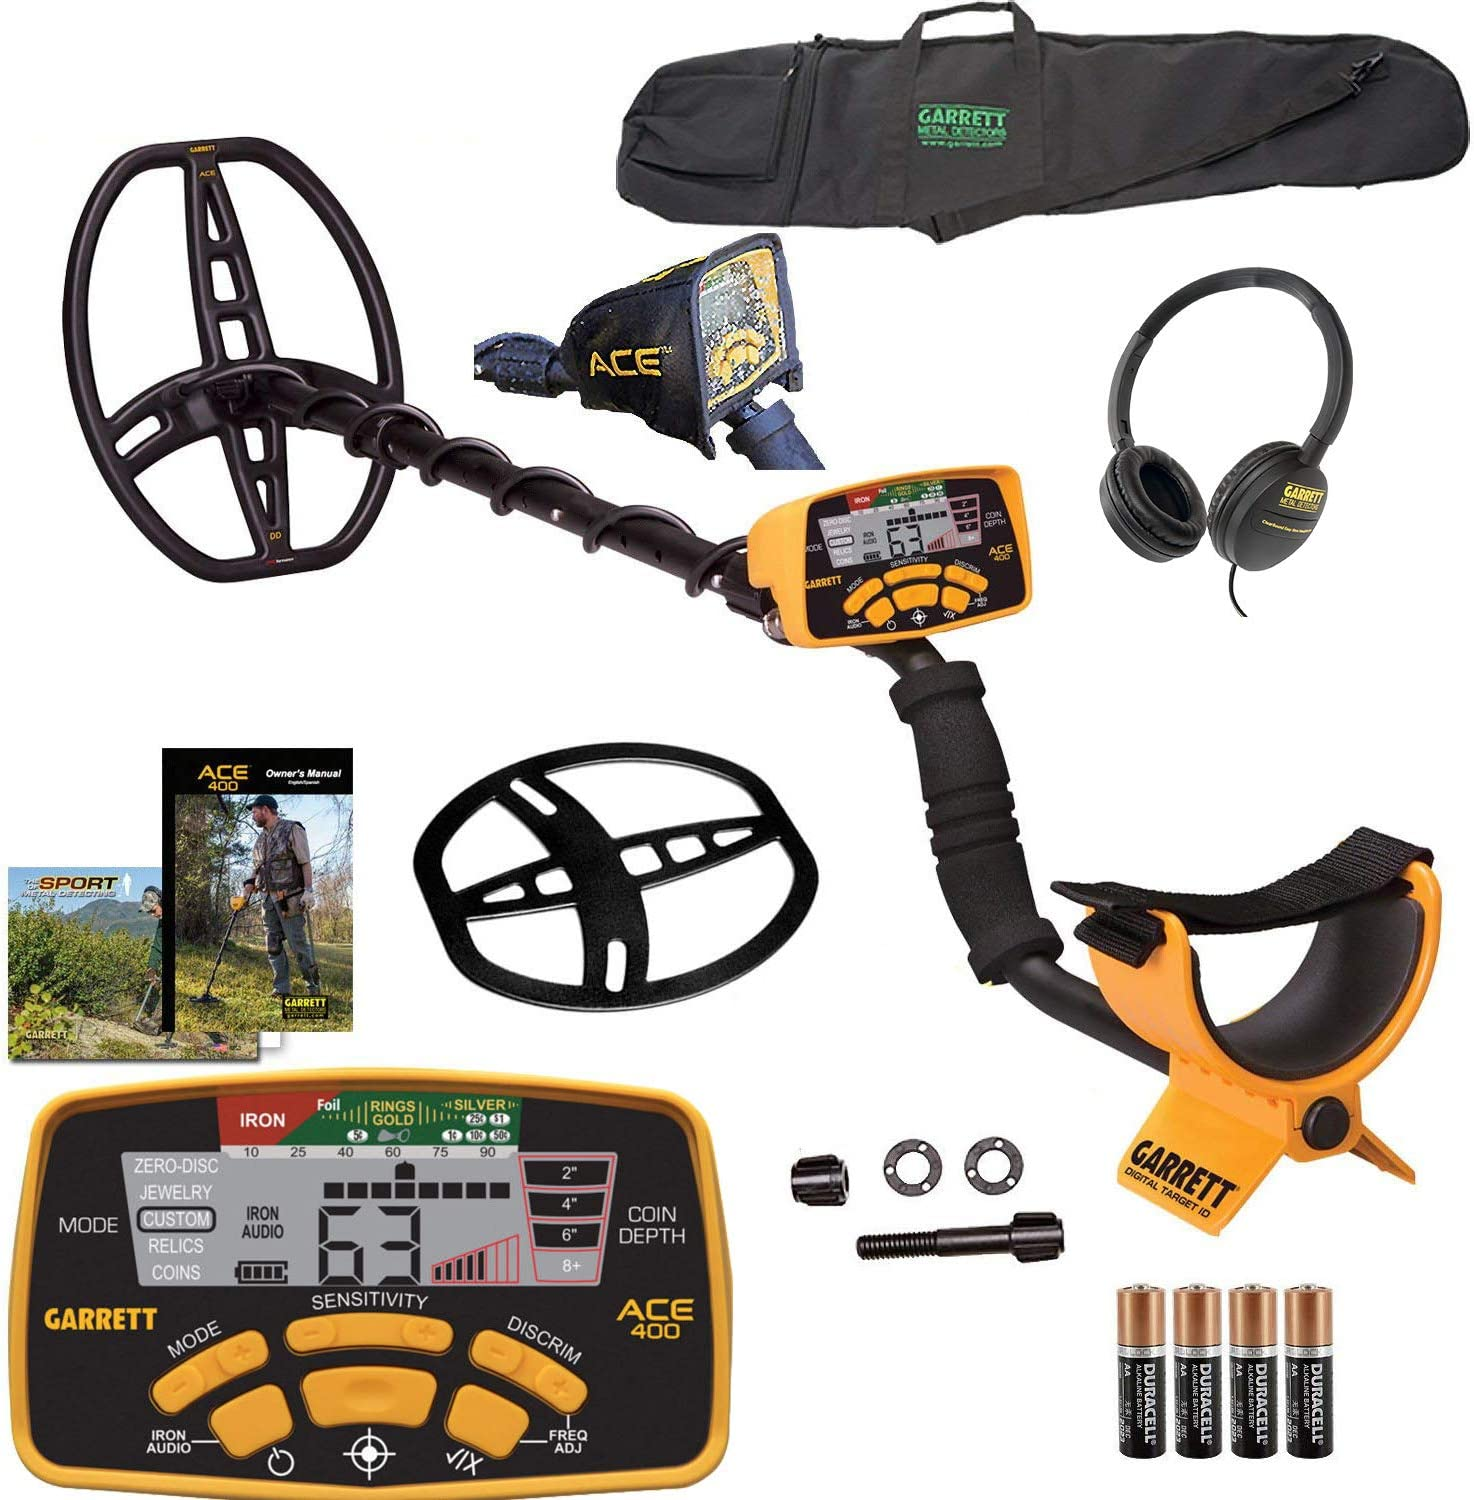 Garrett ACE 400 Metal Detector with DD Waterproof Search Coil and Carry Bag (Pack 1) (1)